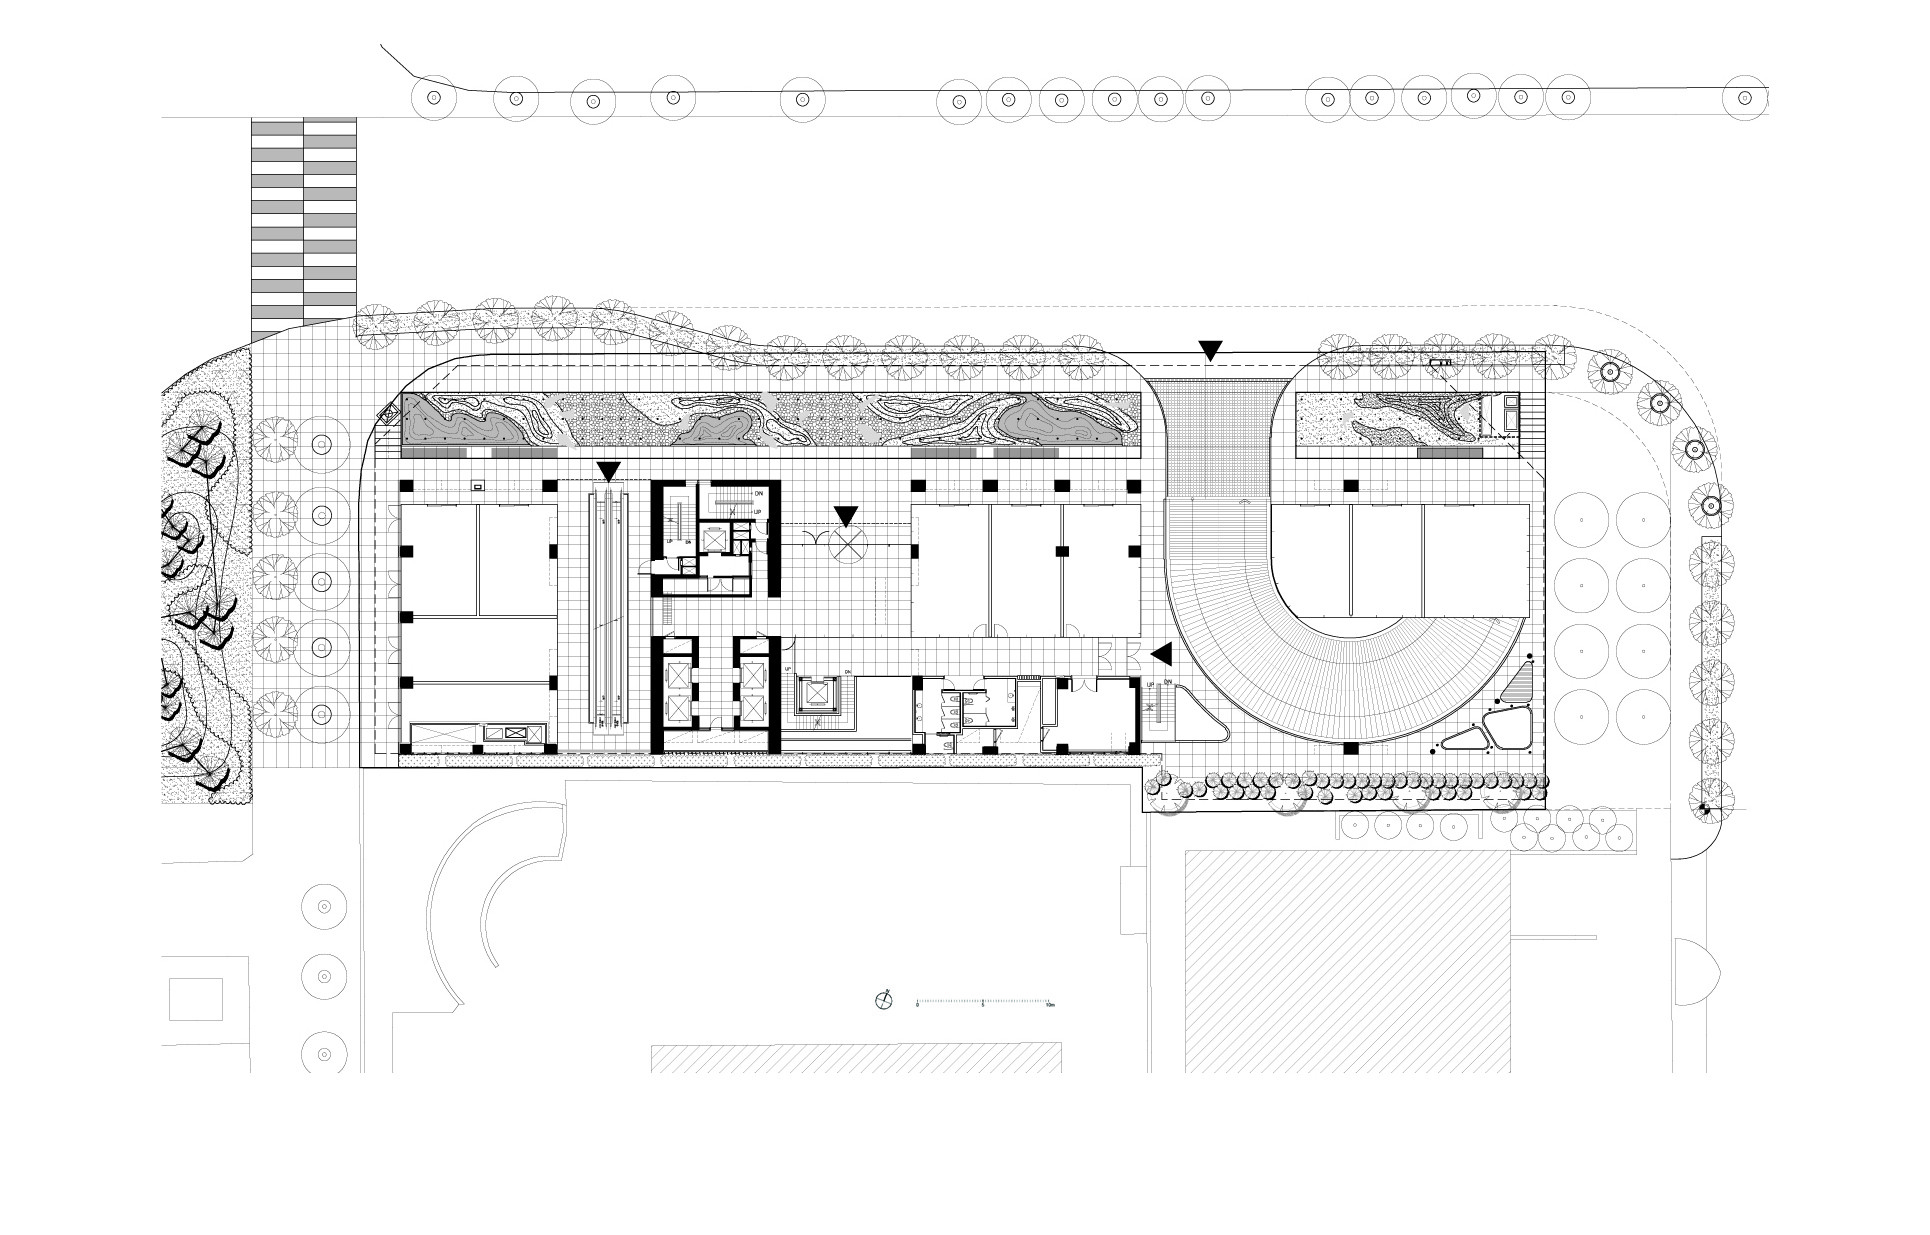 gallery of s trenue tower mass studies 52